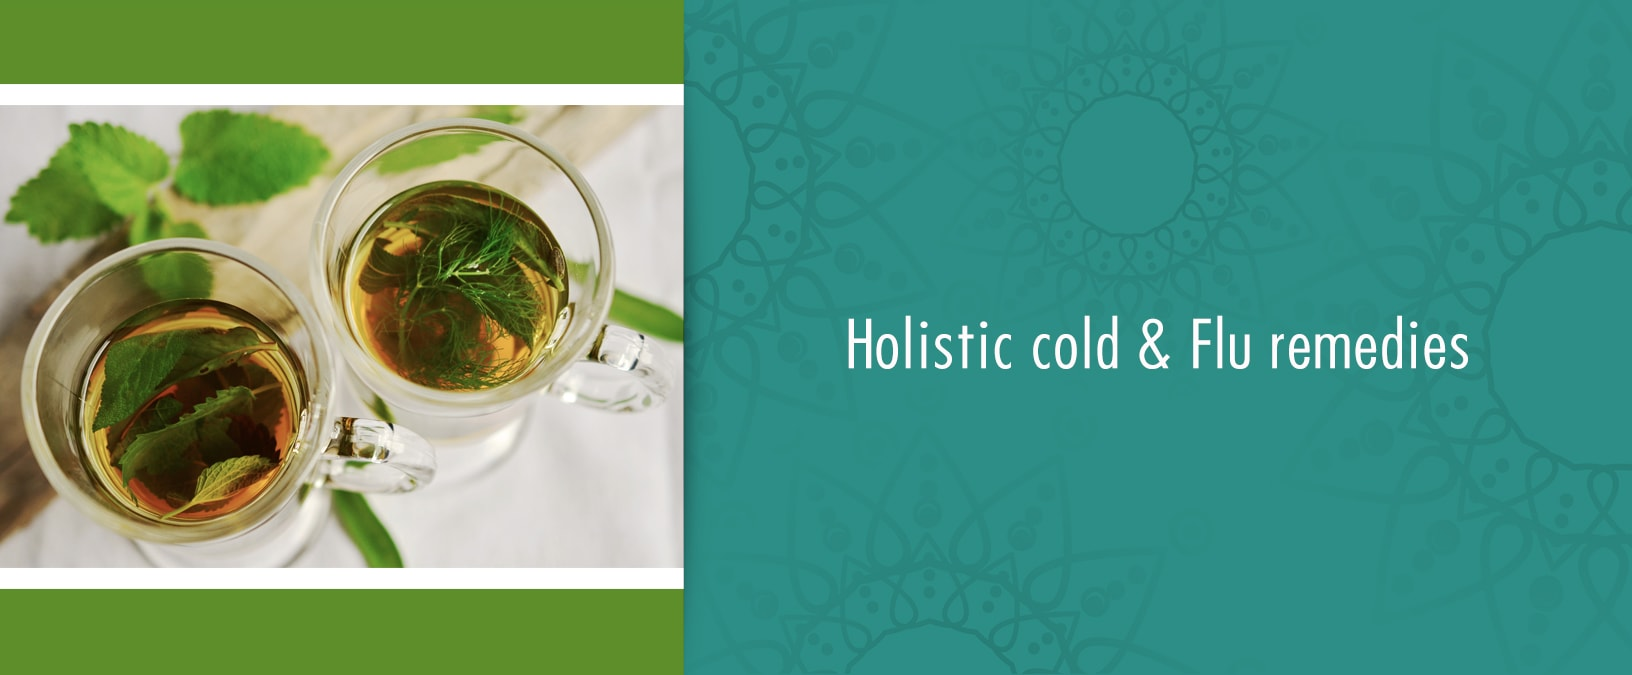 Holistic cold and flu remedies